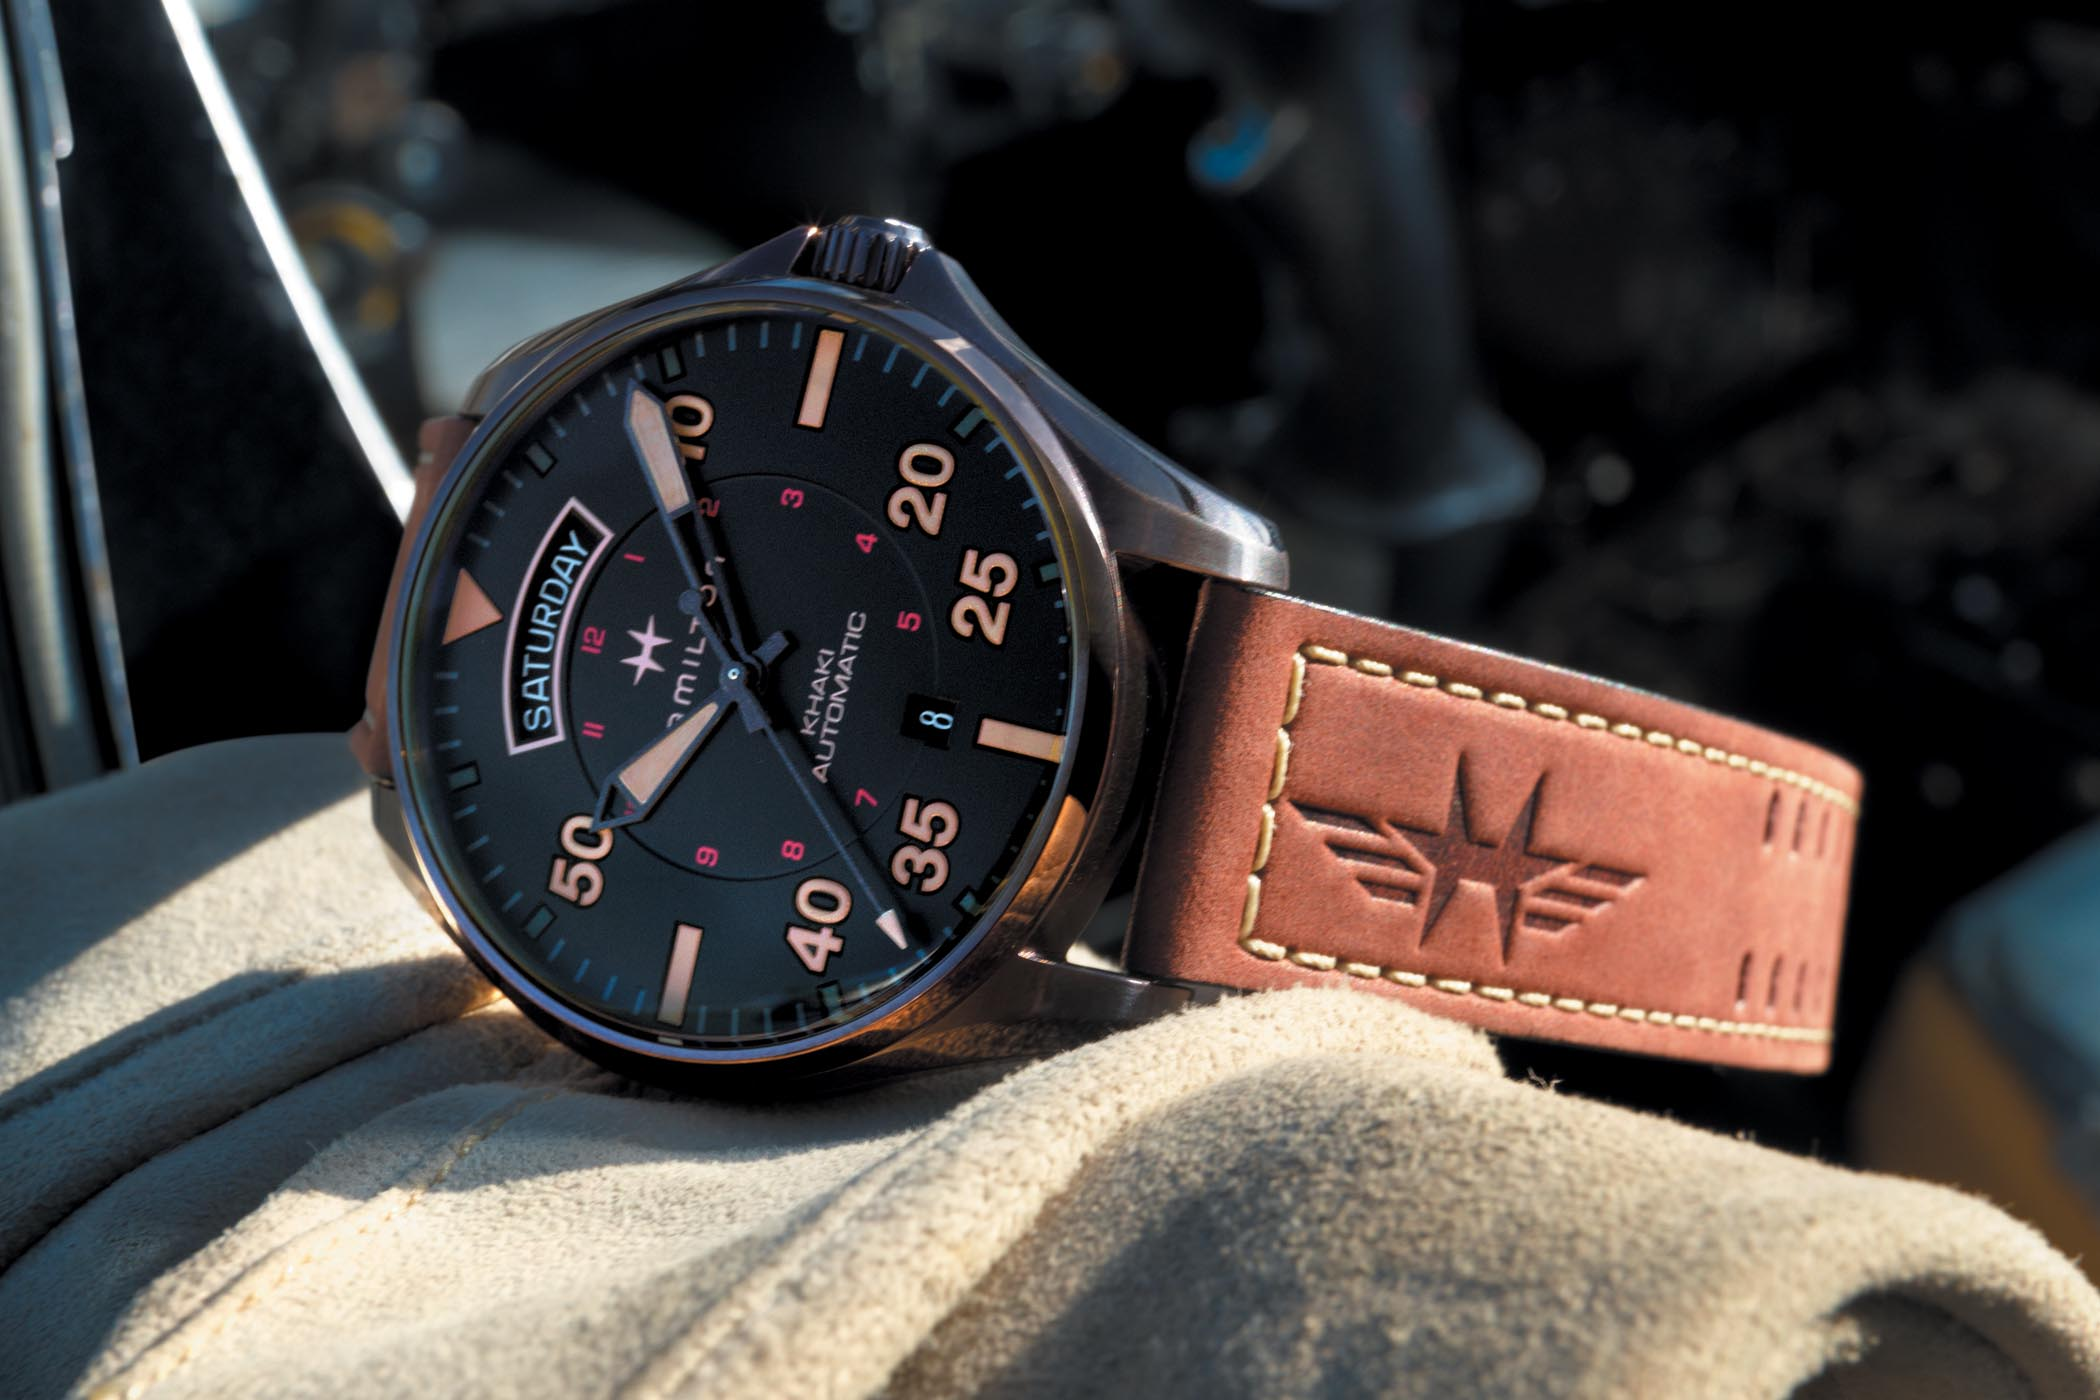 Introducing - Hamilton Khaki Pilot Auto Day Date Collection (Specs ... b00cb64de2c8